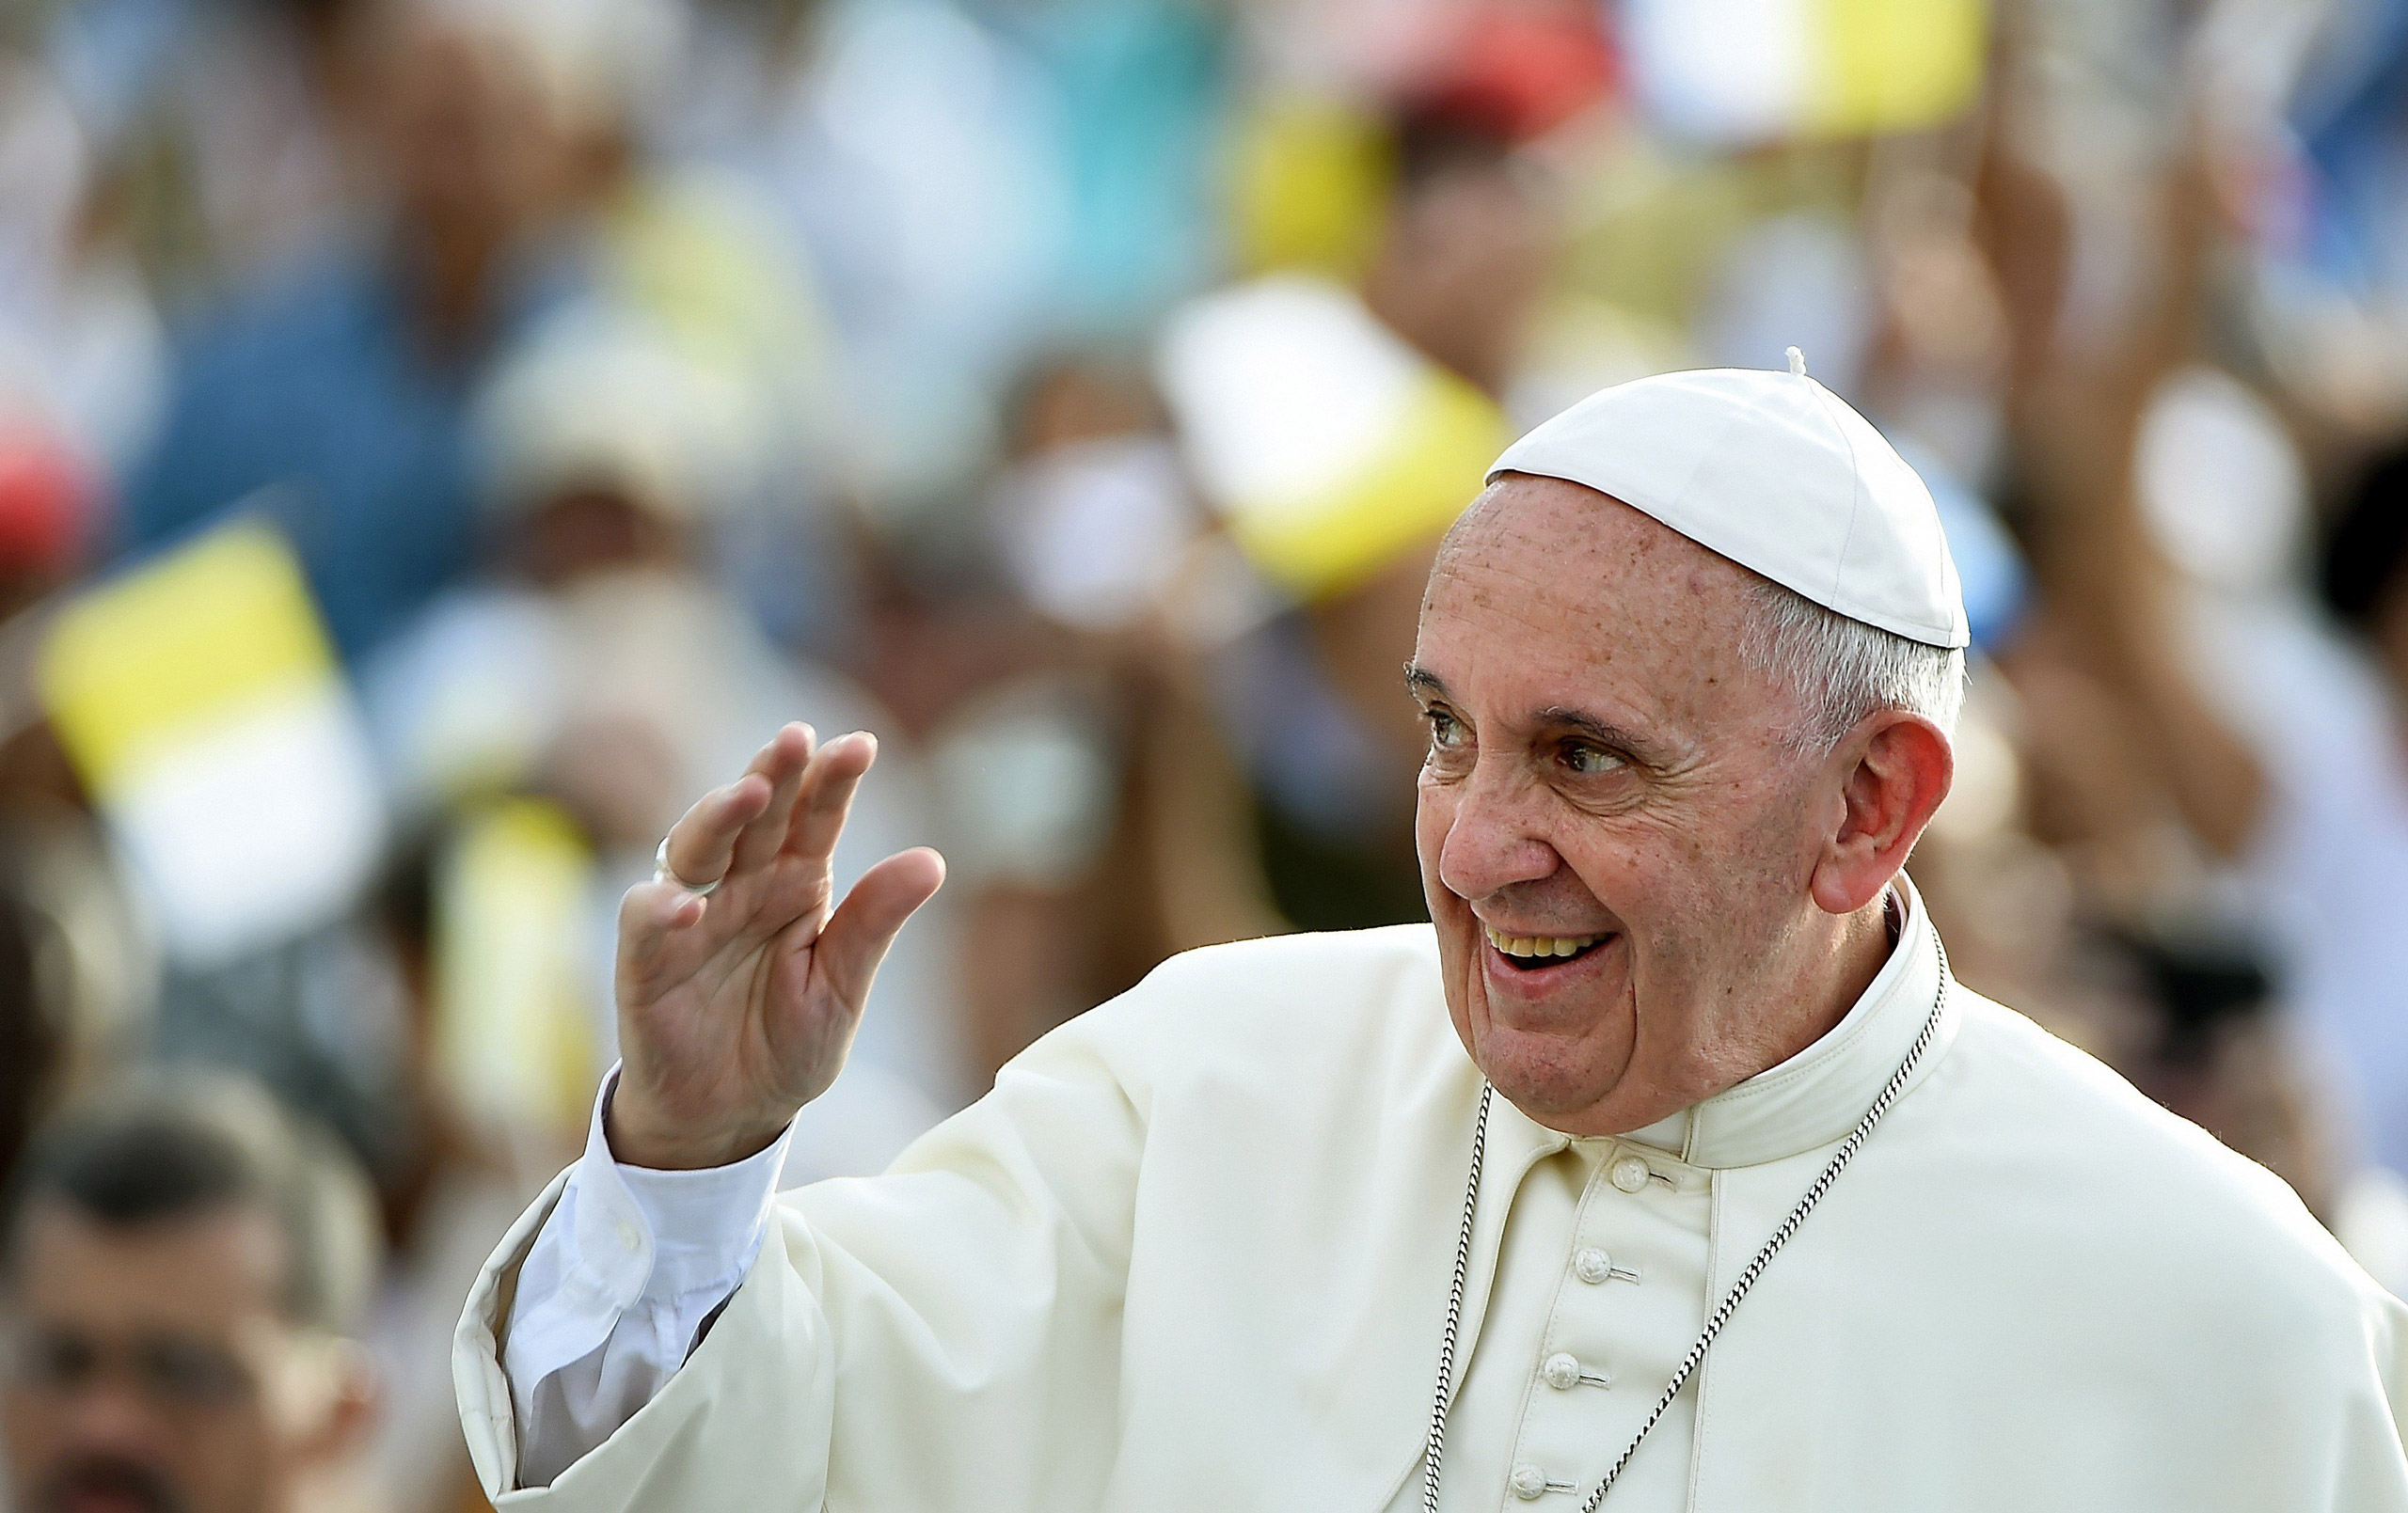 Pope Francis waves upon his arrival in Santiago de Cuba on Sept. 21, 2015.